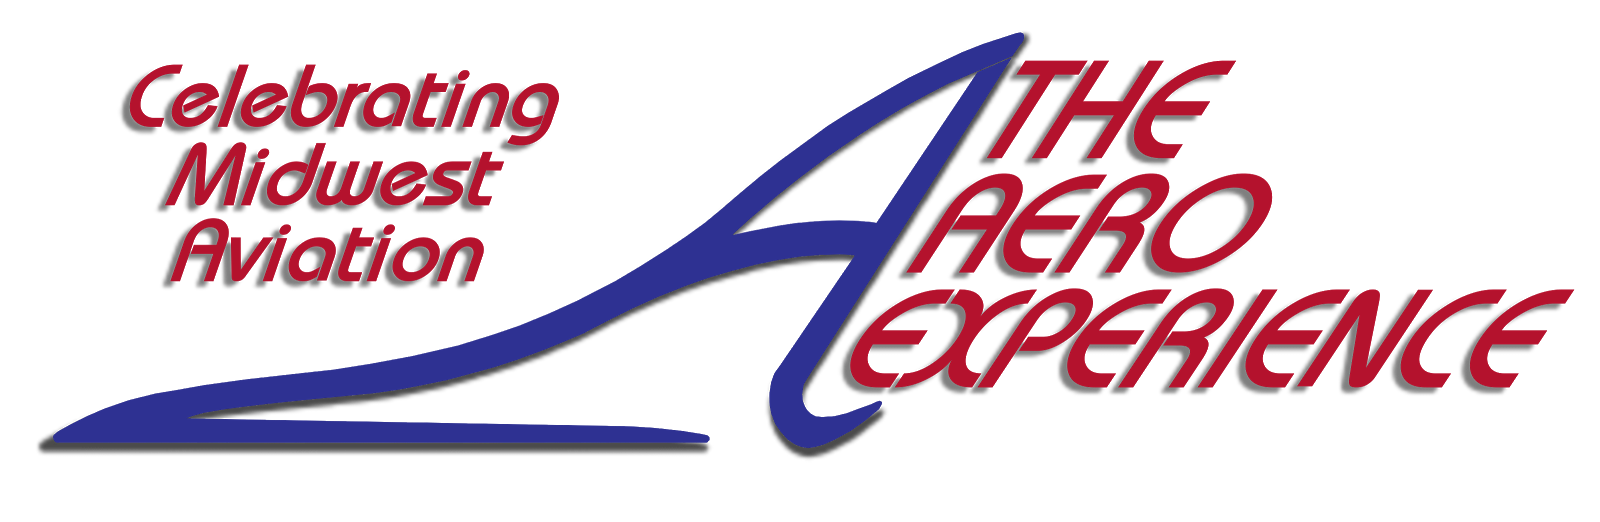 The Aero Experience New Event Season, April - November 2014